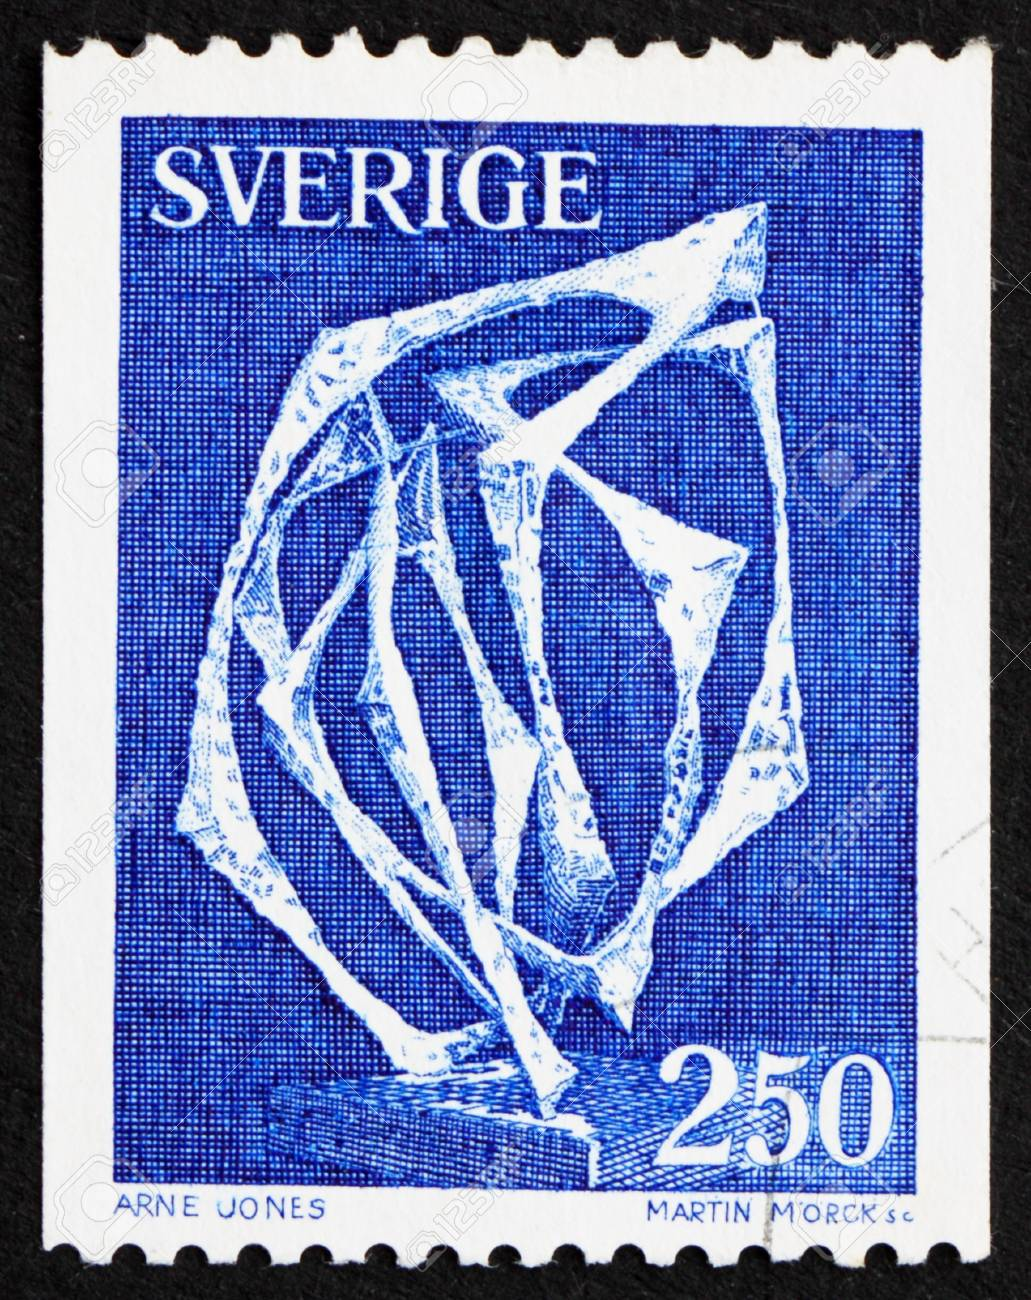 SWEDEN - CIRCA 1978: a stamp printed in the Sweden shows Space without Affiliation, sculpture by Arne Jones, circa 1978 Stock Photo - 13685523